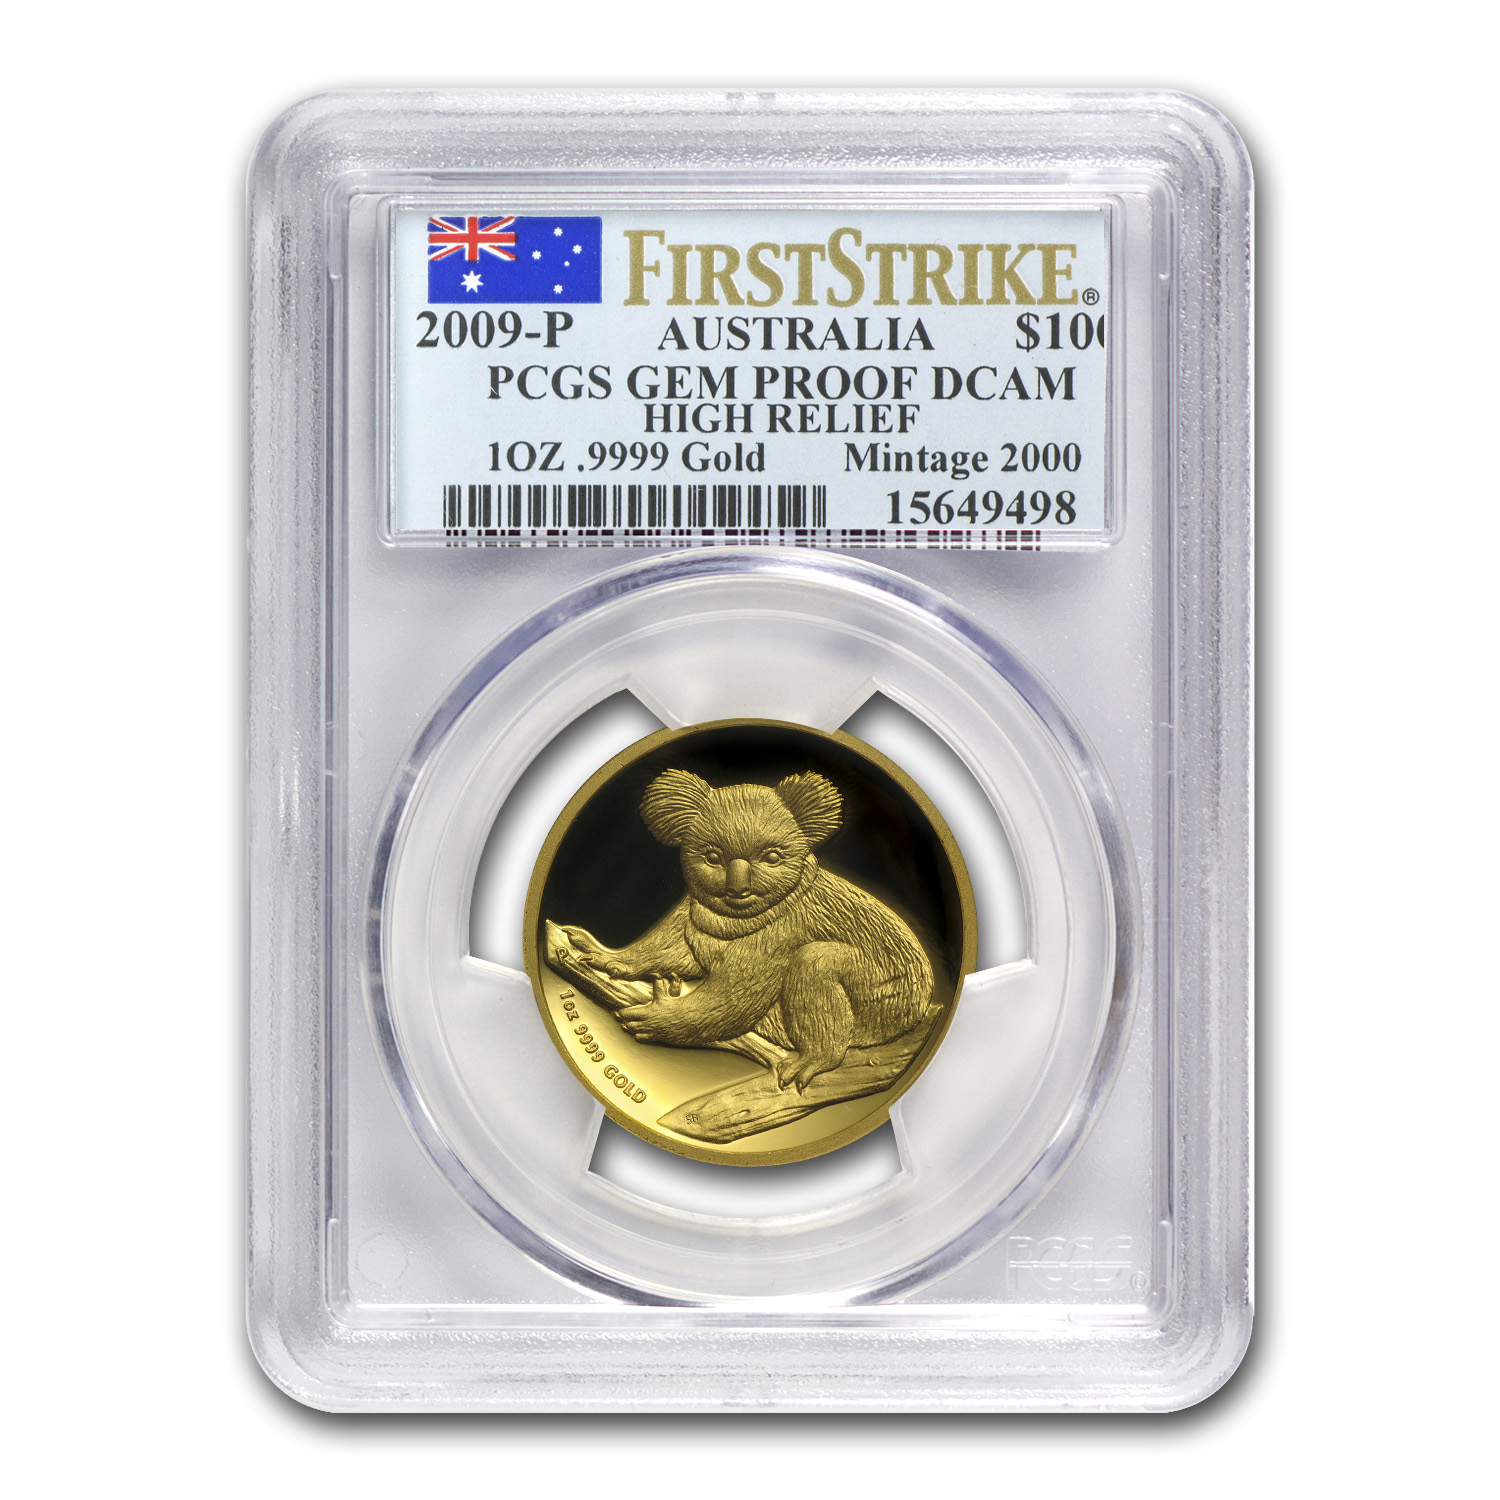 2009-P Australia 1 oz Gold Koala Gem Prf PCGS (FS, High Relief)